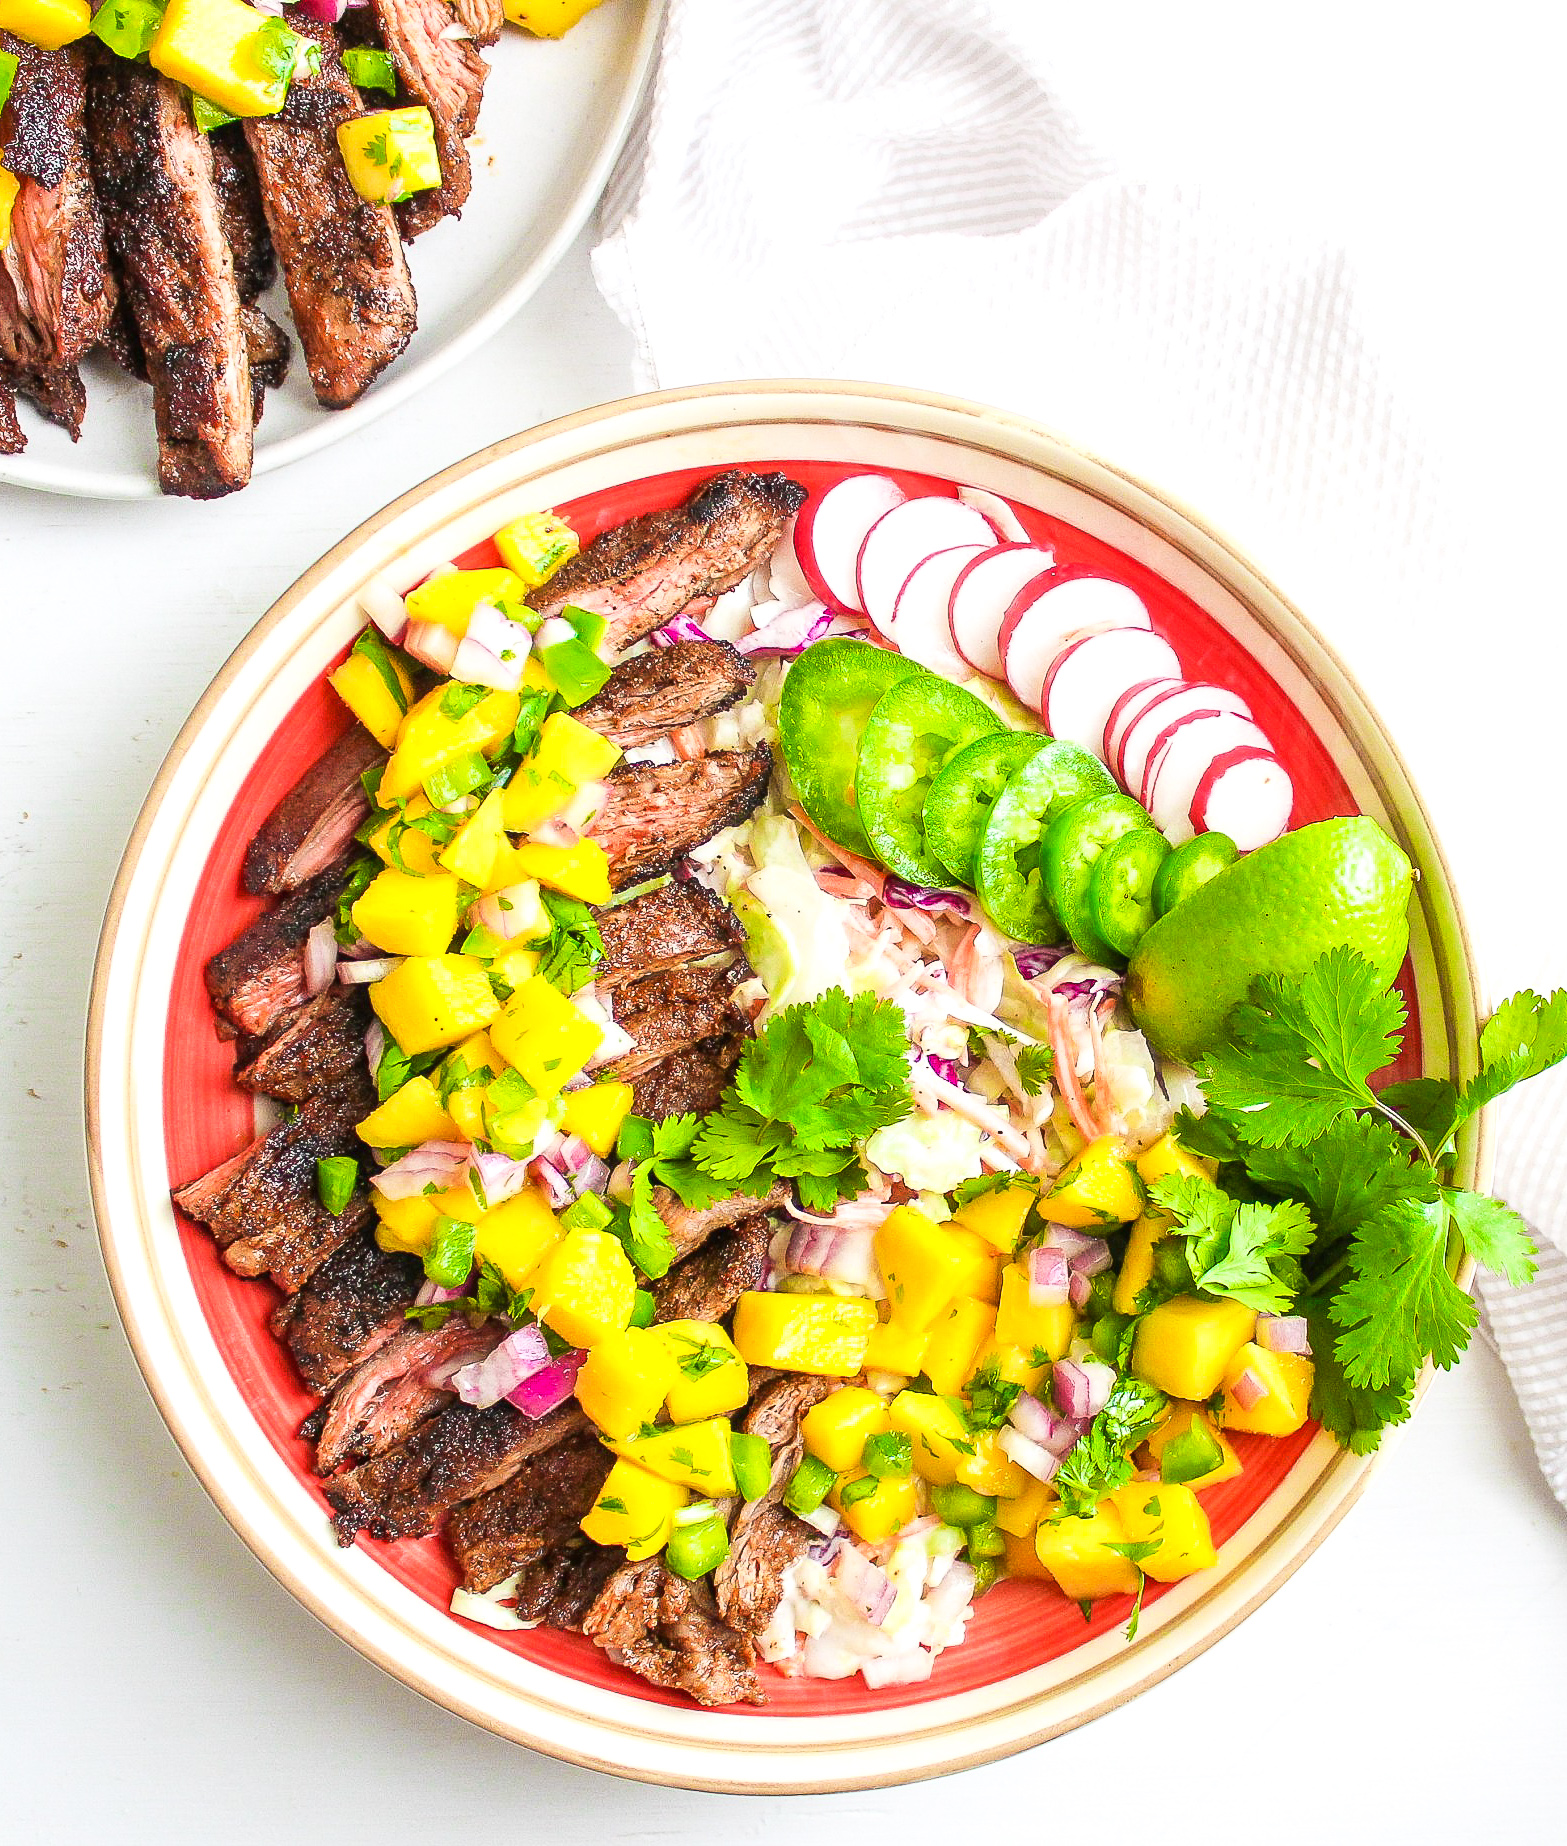 Sliced steak over coleslaw, topped with fresh mango salsa